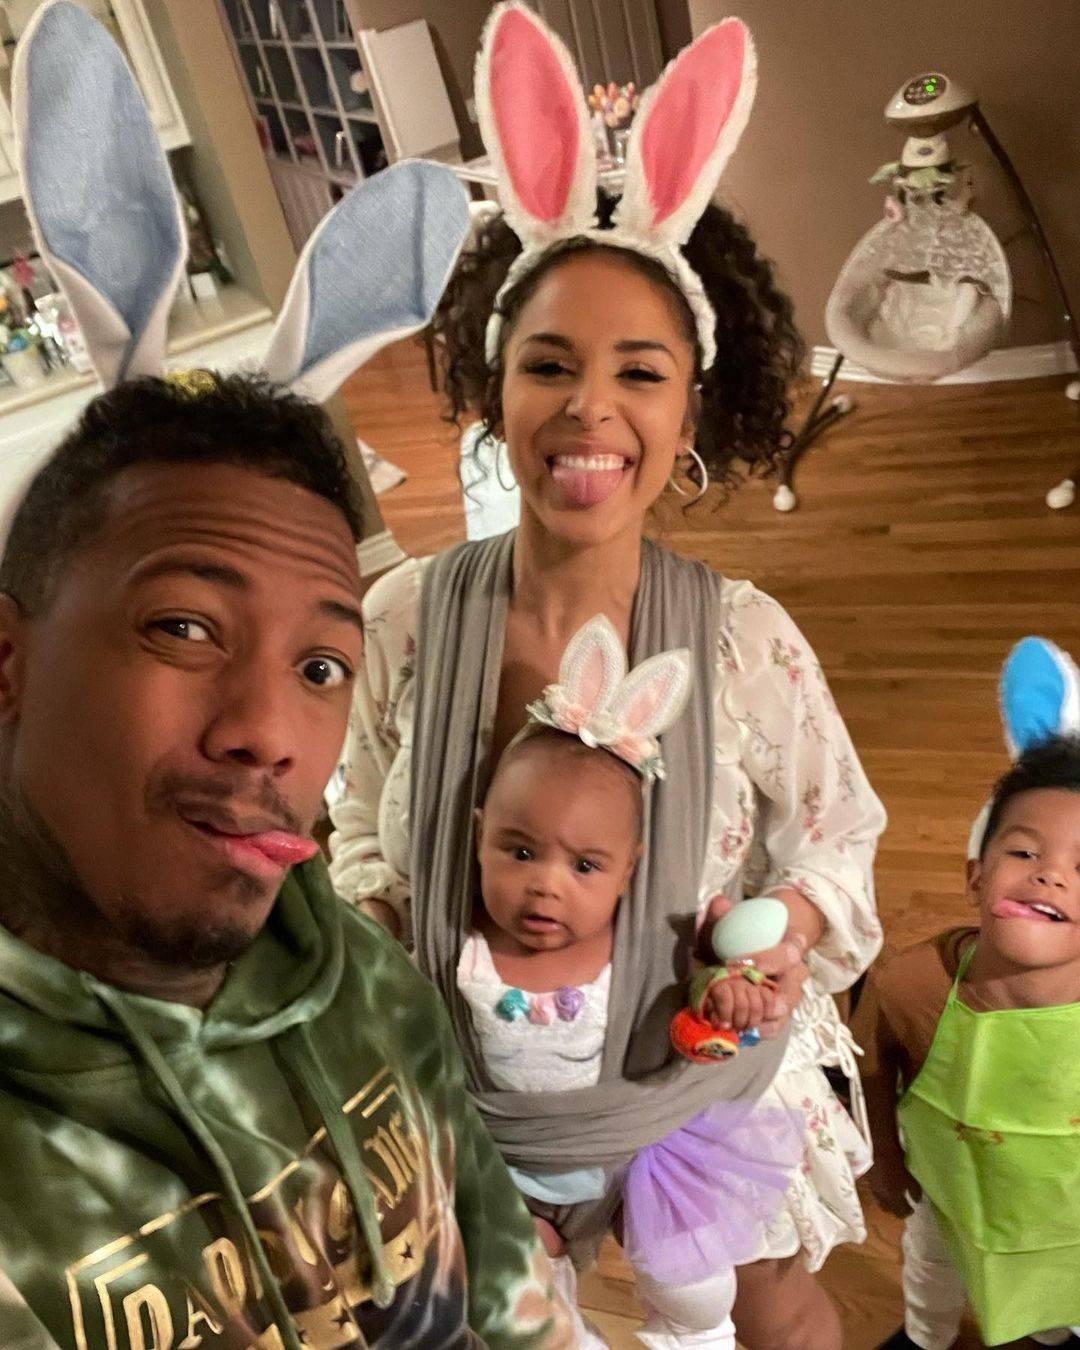 Nick Cannon with Brittany Bell and two kids on Easter